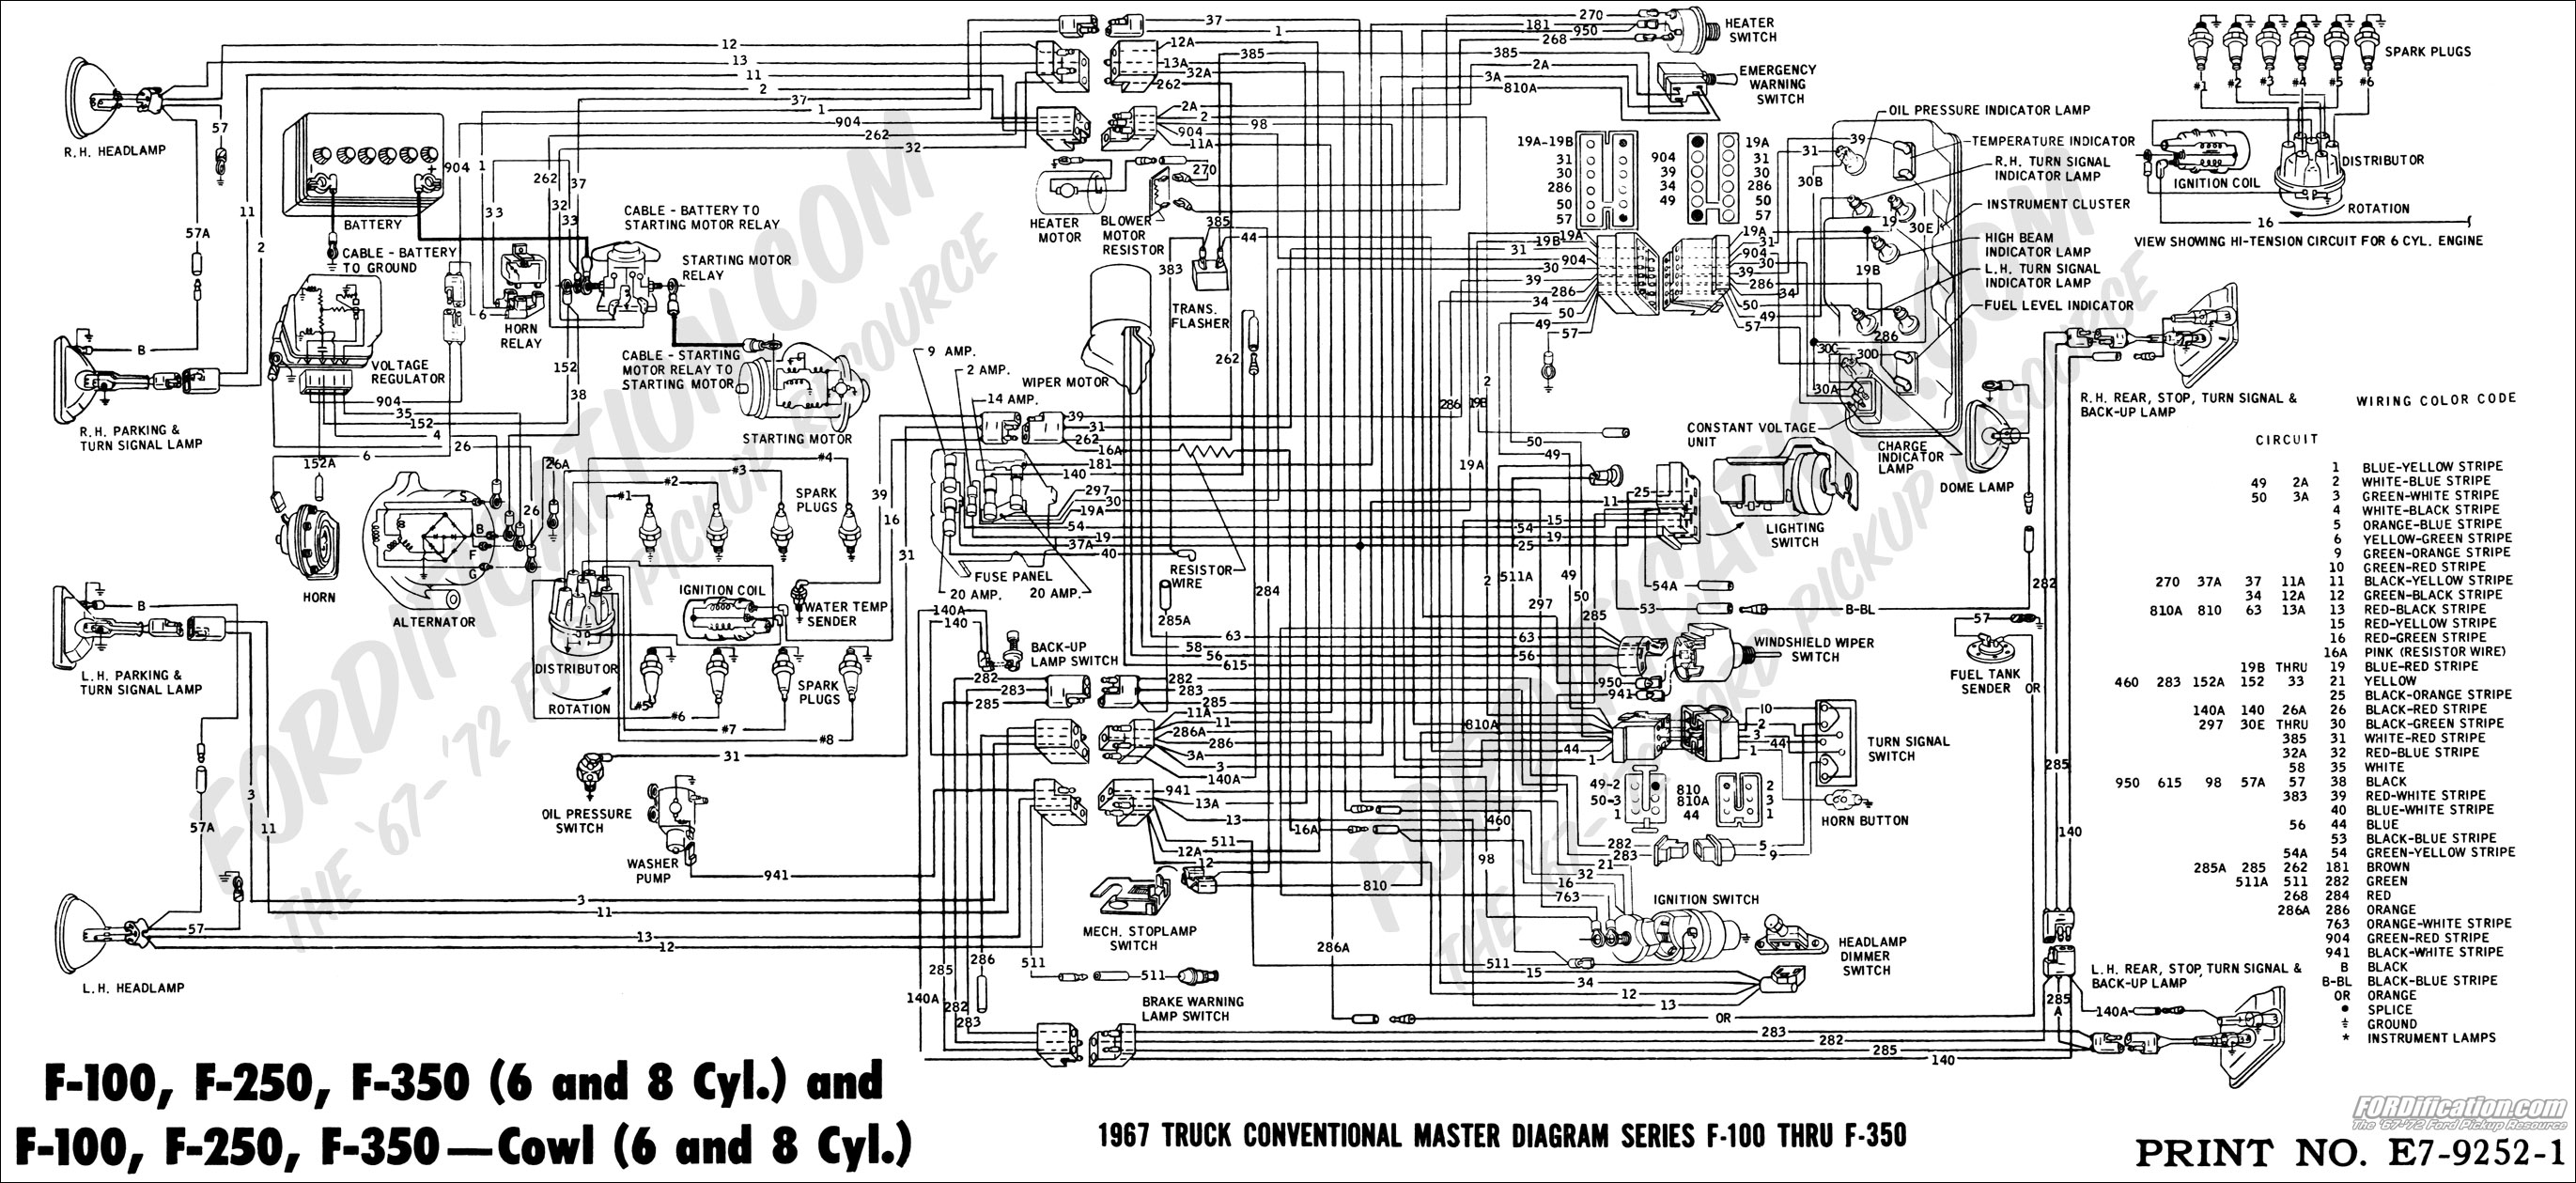 67masterdiagram ford f150 wiring diagram pdf 84 ford f 150 wiring diagram \u2022 wiring 2006 ford f150 wire harness at soozxer.org